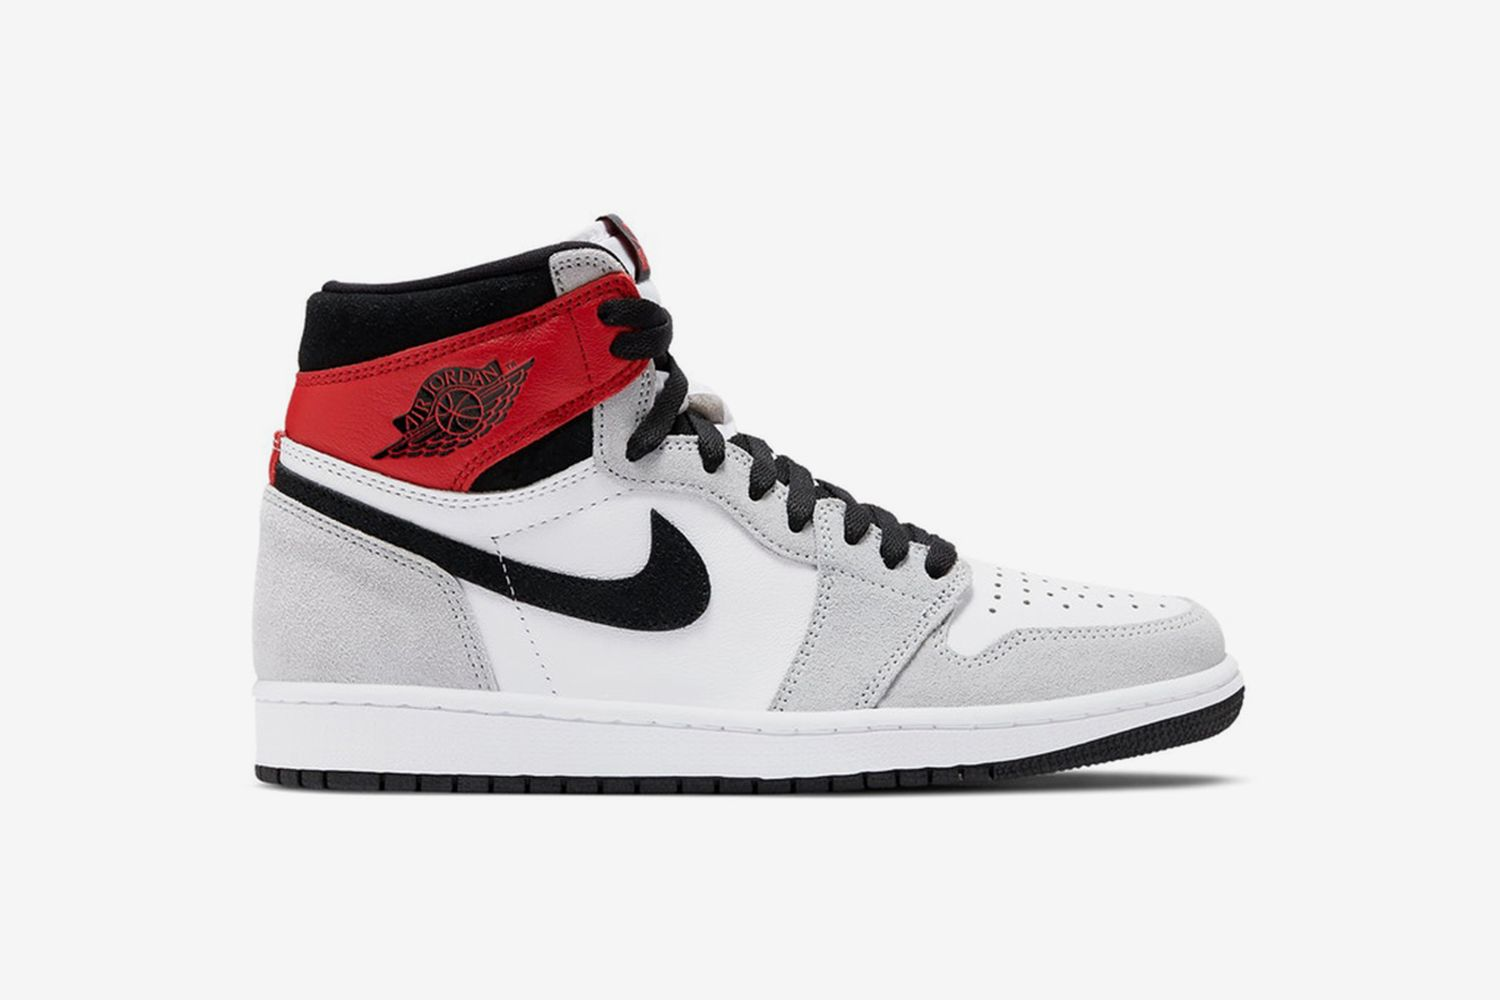 Air Jordan 1 Retro High Smoke Grey